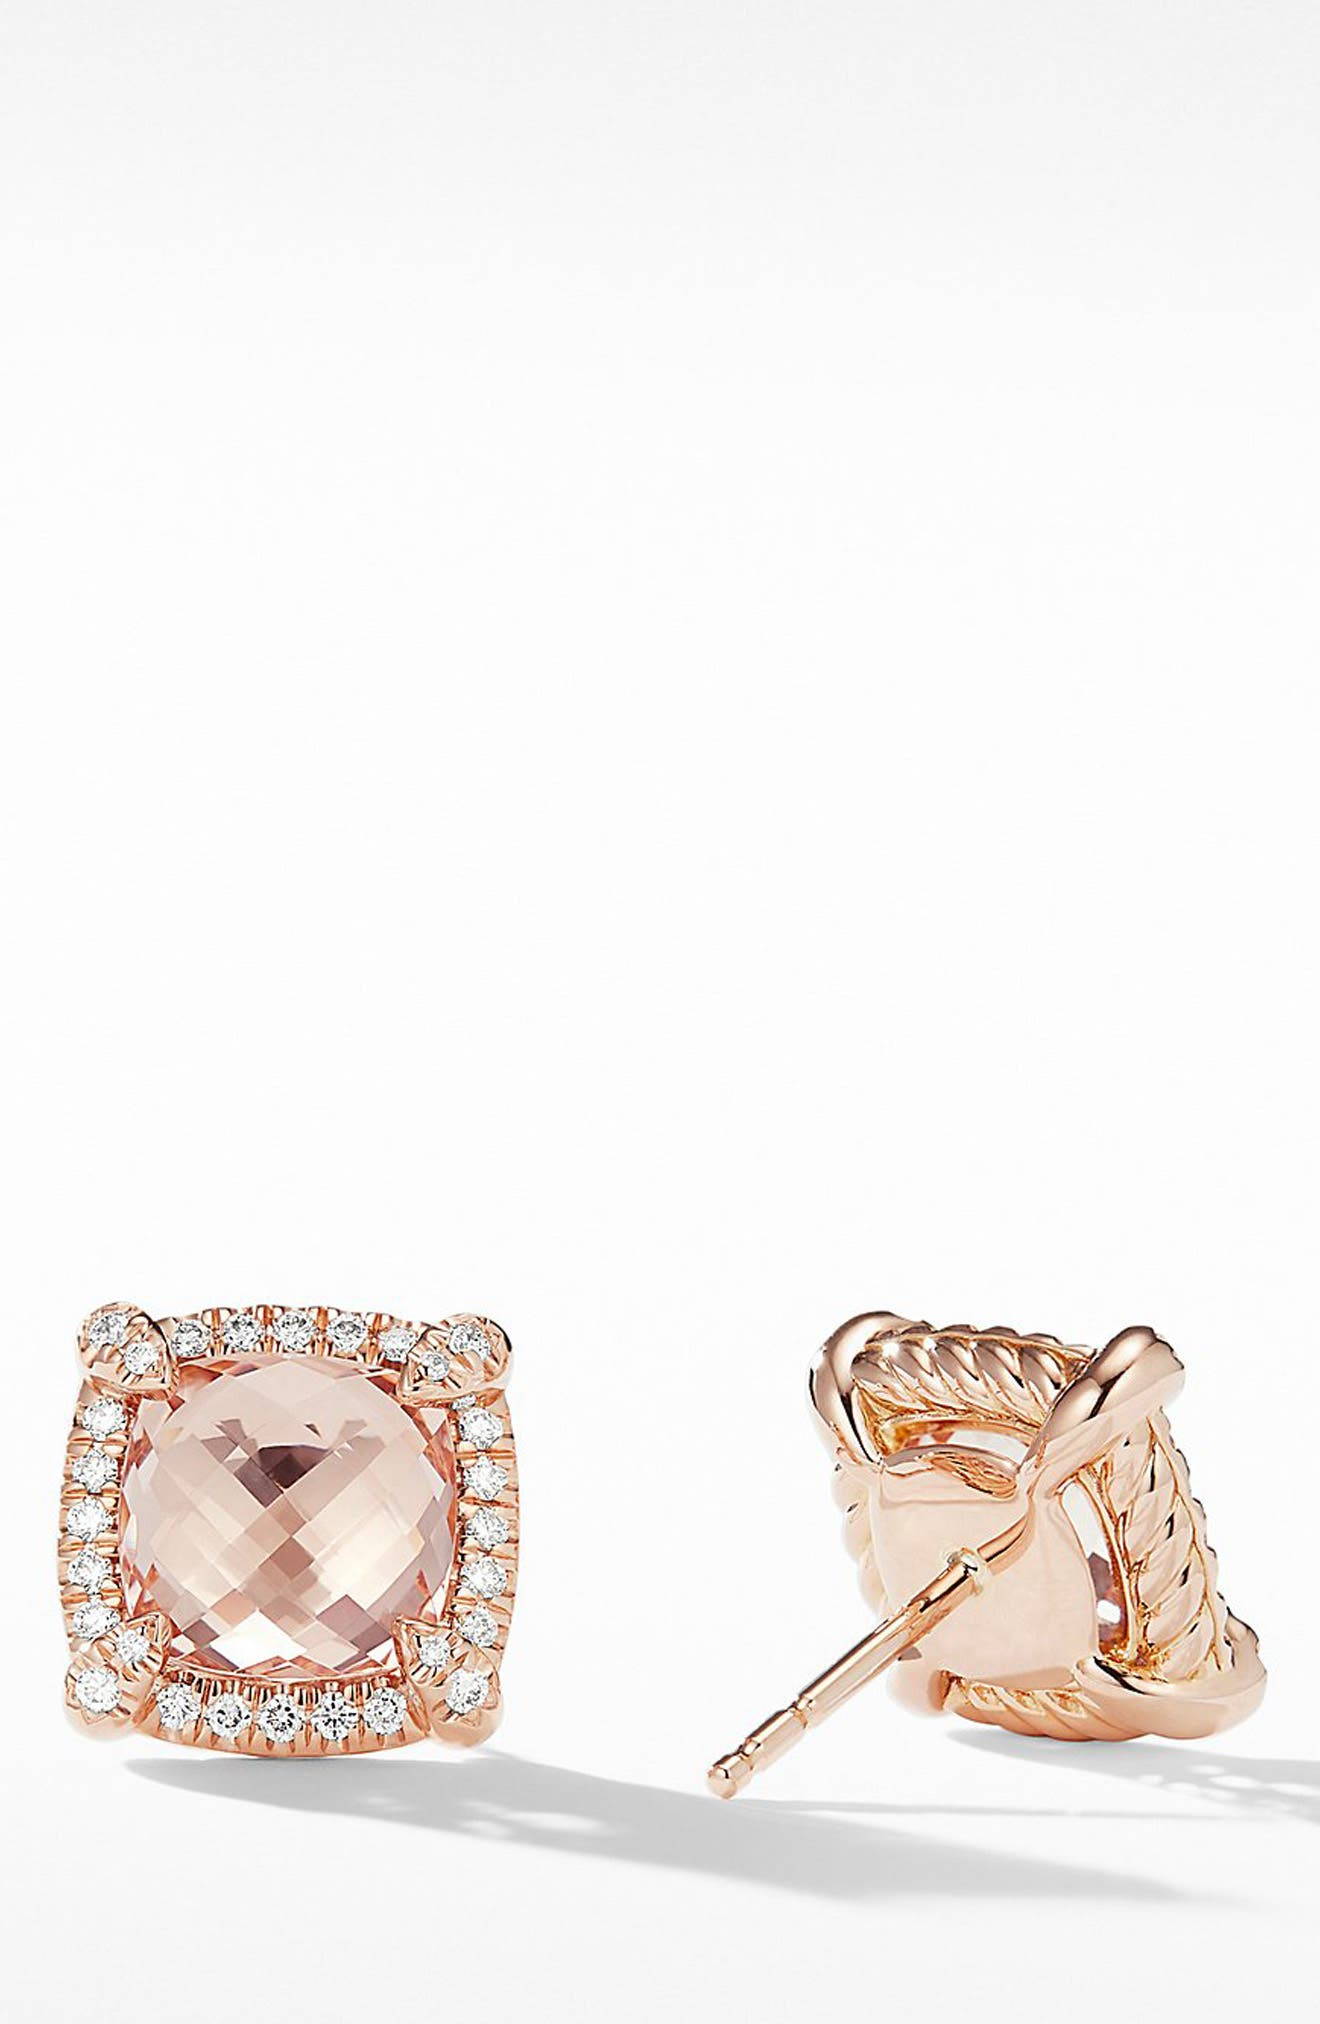 Châtelaine Pavé Bezel Stud Earrings with Morganite and Diamonds in 18K Rose Gold,                             Alternate thumbnail 2, color,                             ROSE GOLD/ DIAMOND/ MORGANITE